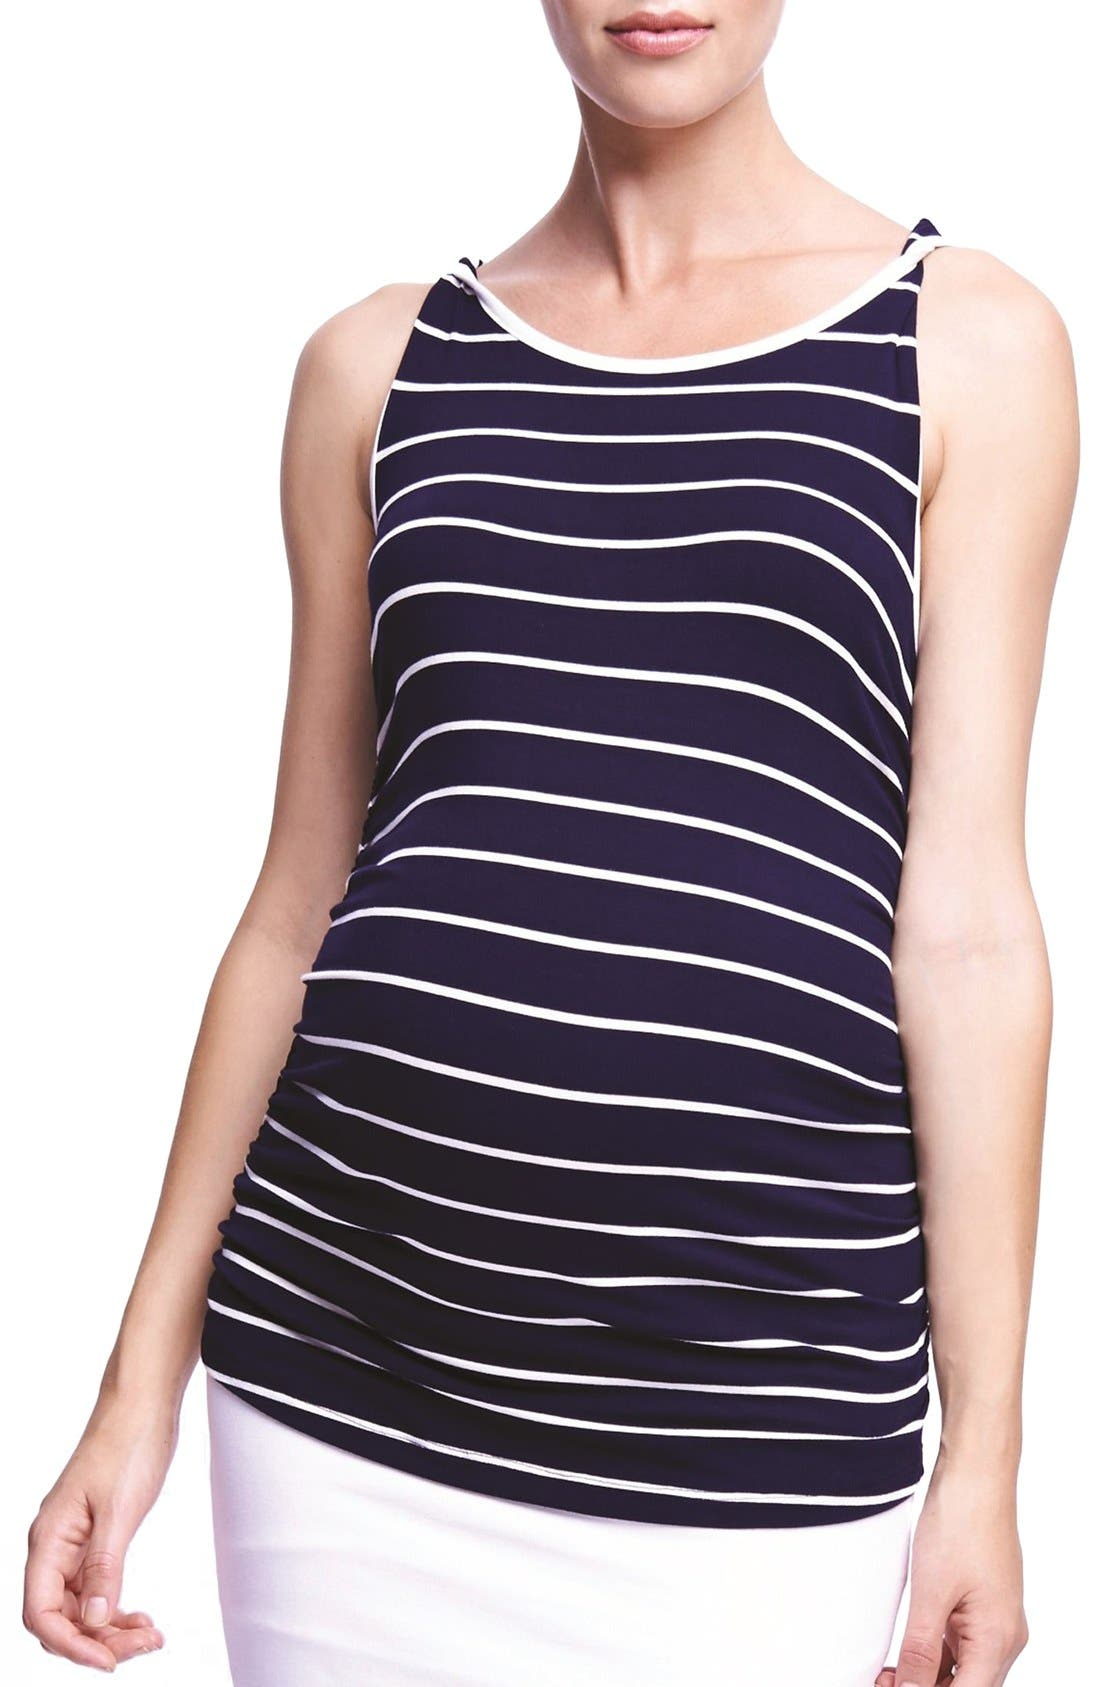 'Twist' Stripe Maternity Tank,                             Main thumbnail 1, color,                             Navy/ White Stripe